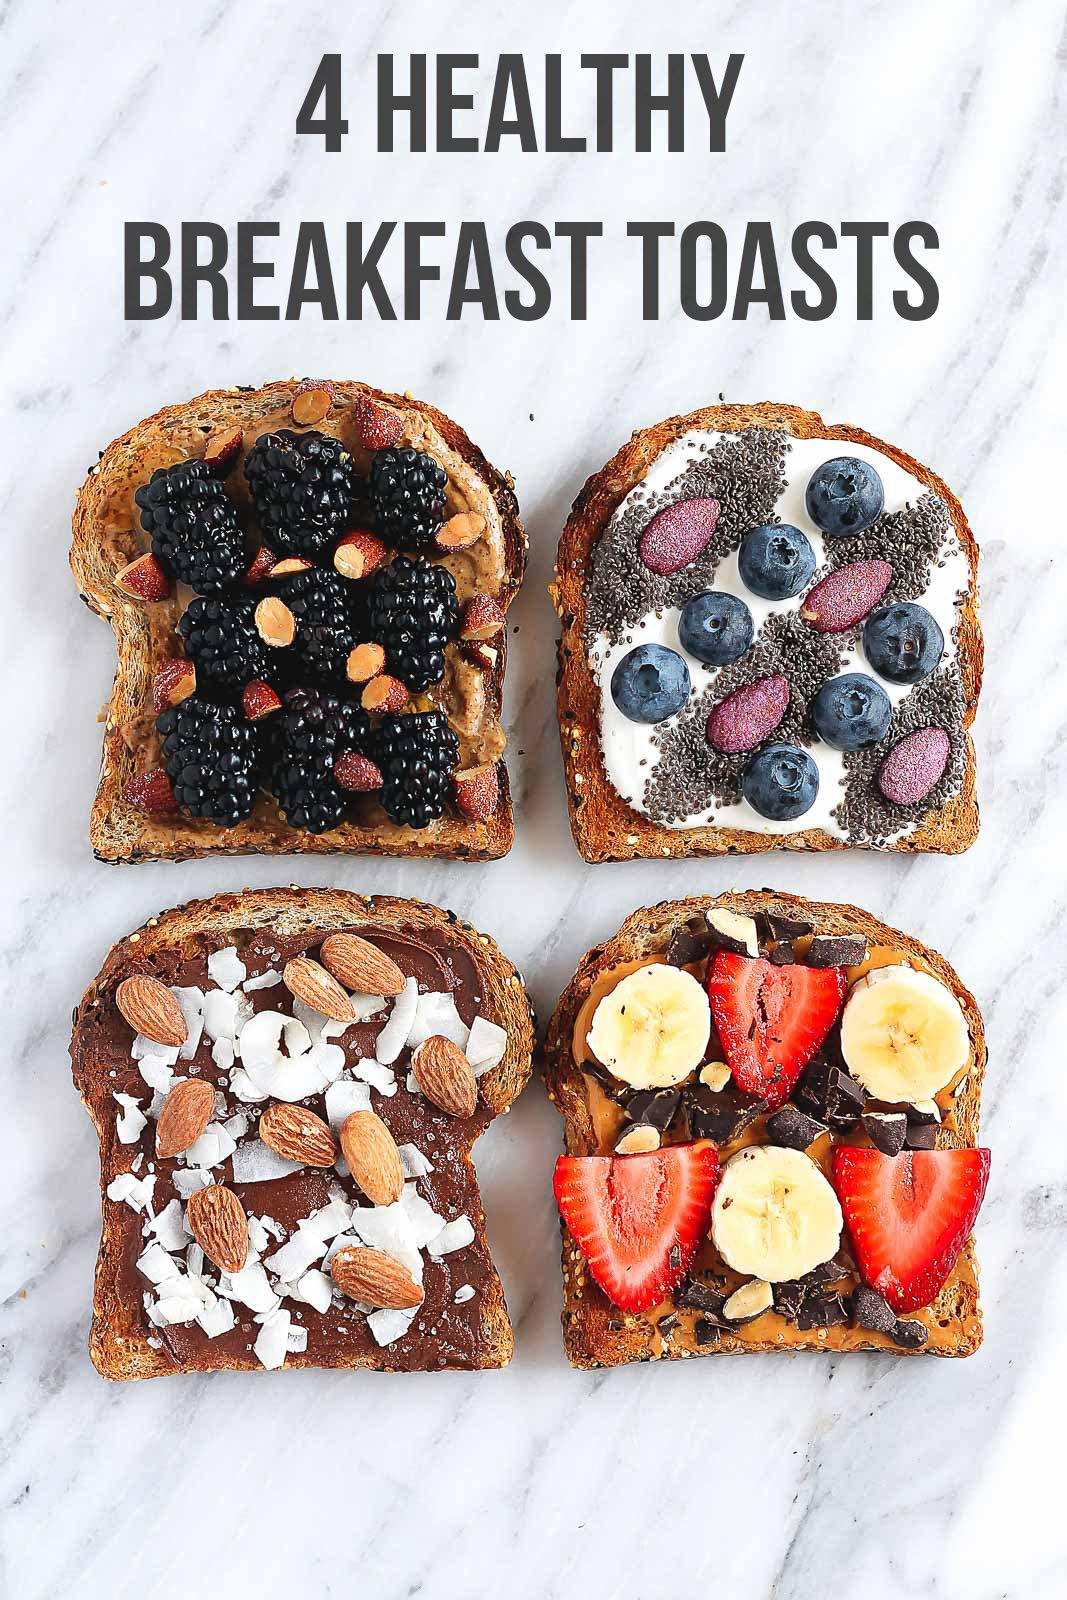 4 Healthy Breakfast Toasts graphic